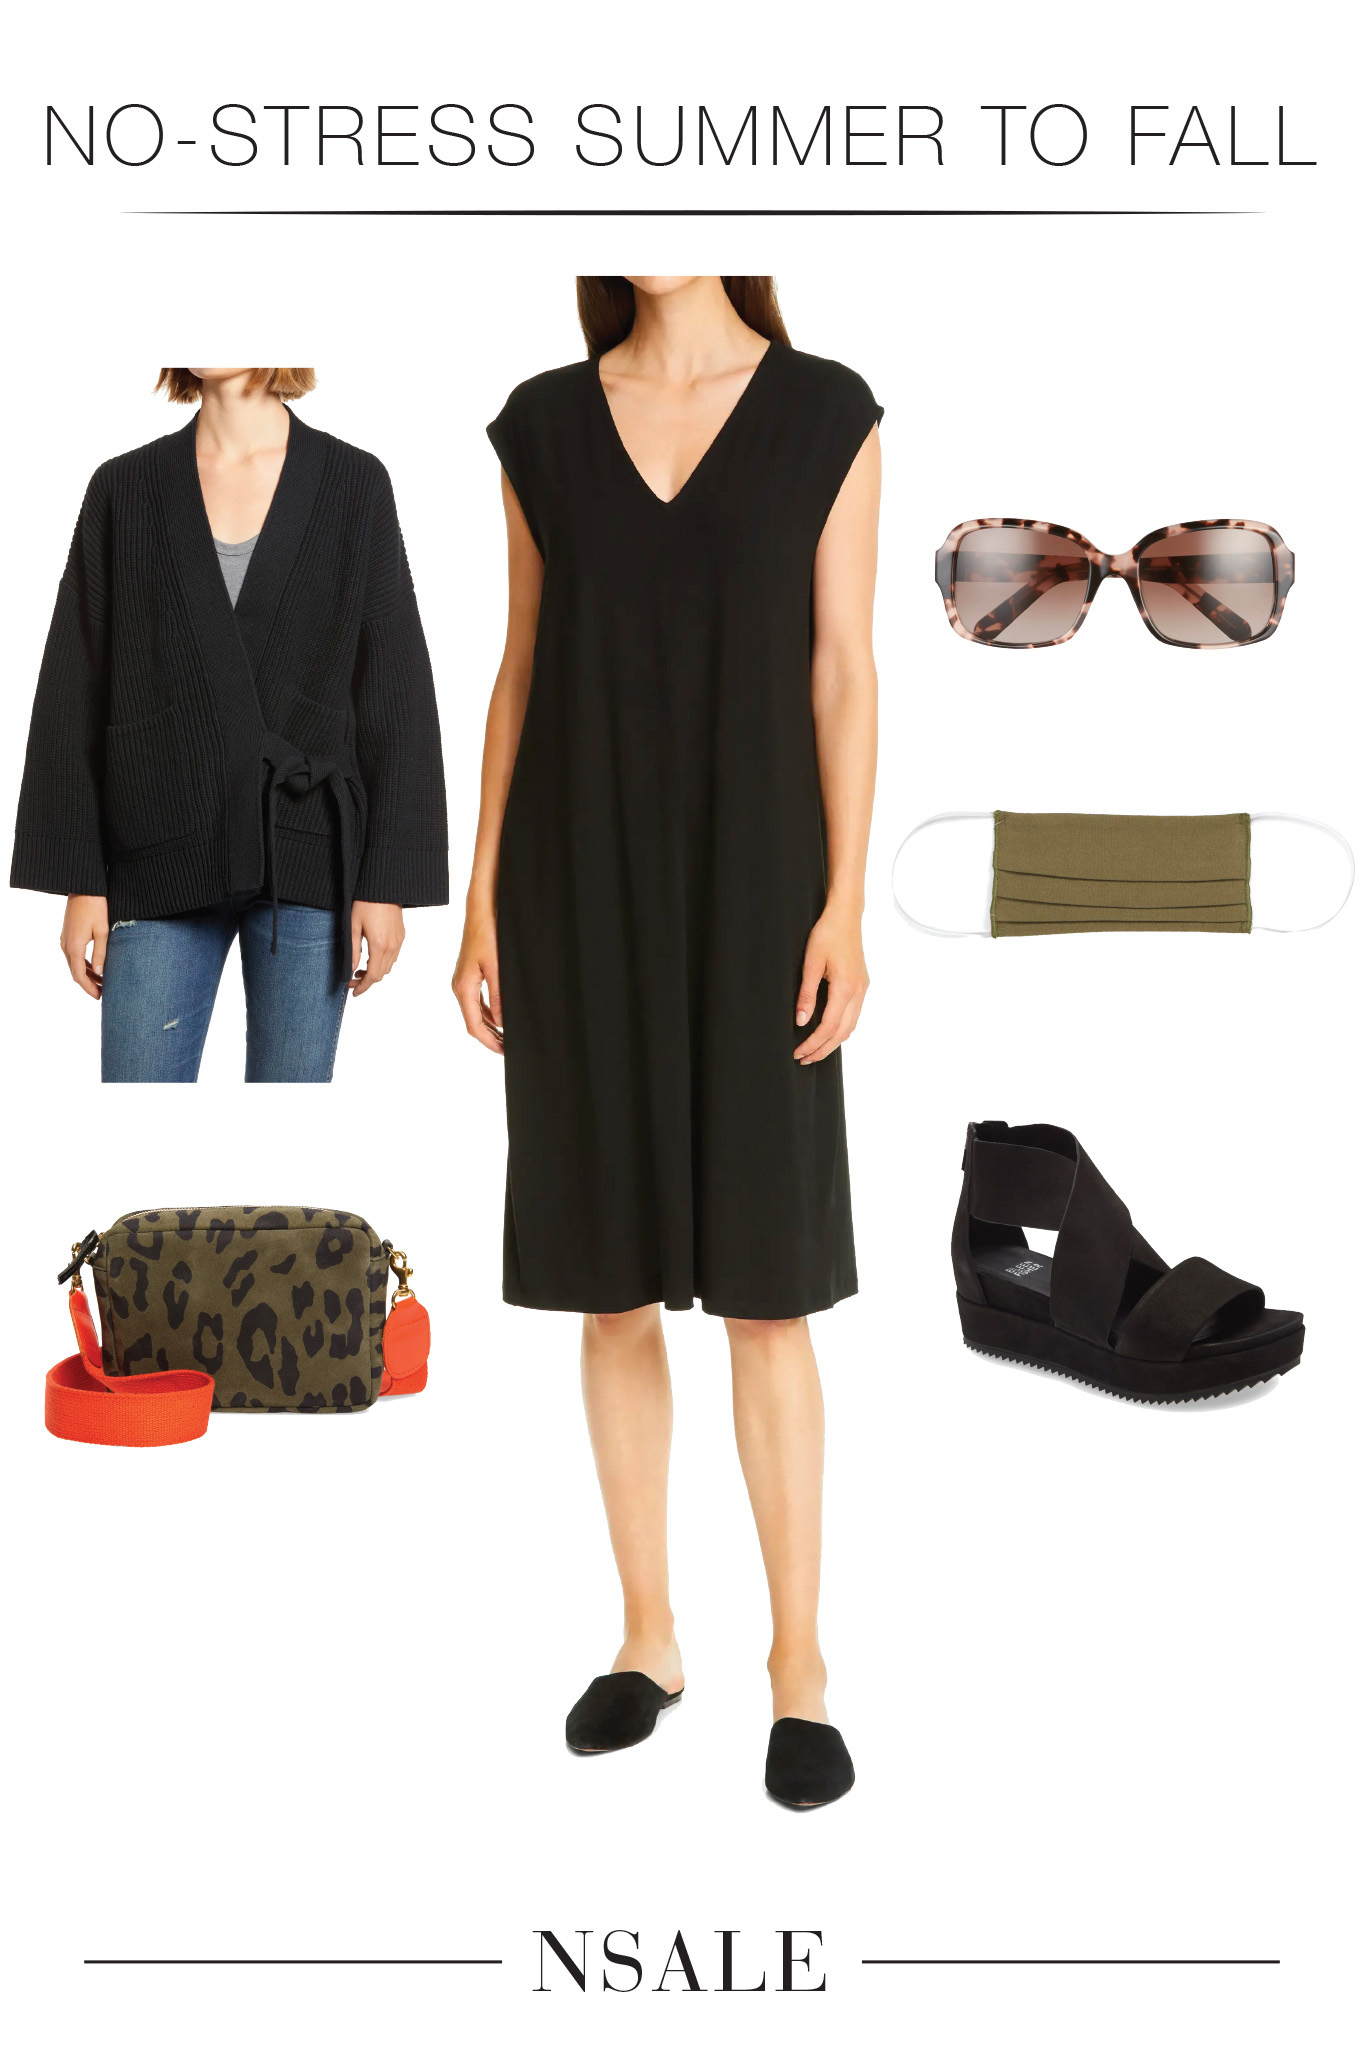 For this EILEEN FISHER dress (high-quality, soft & comfy) we're styling sandals for now (+ a face mask), then, a sweater, tights & boots for later.